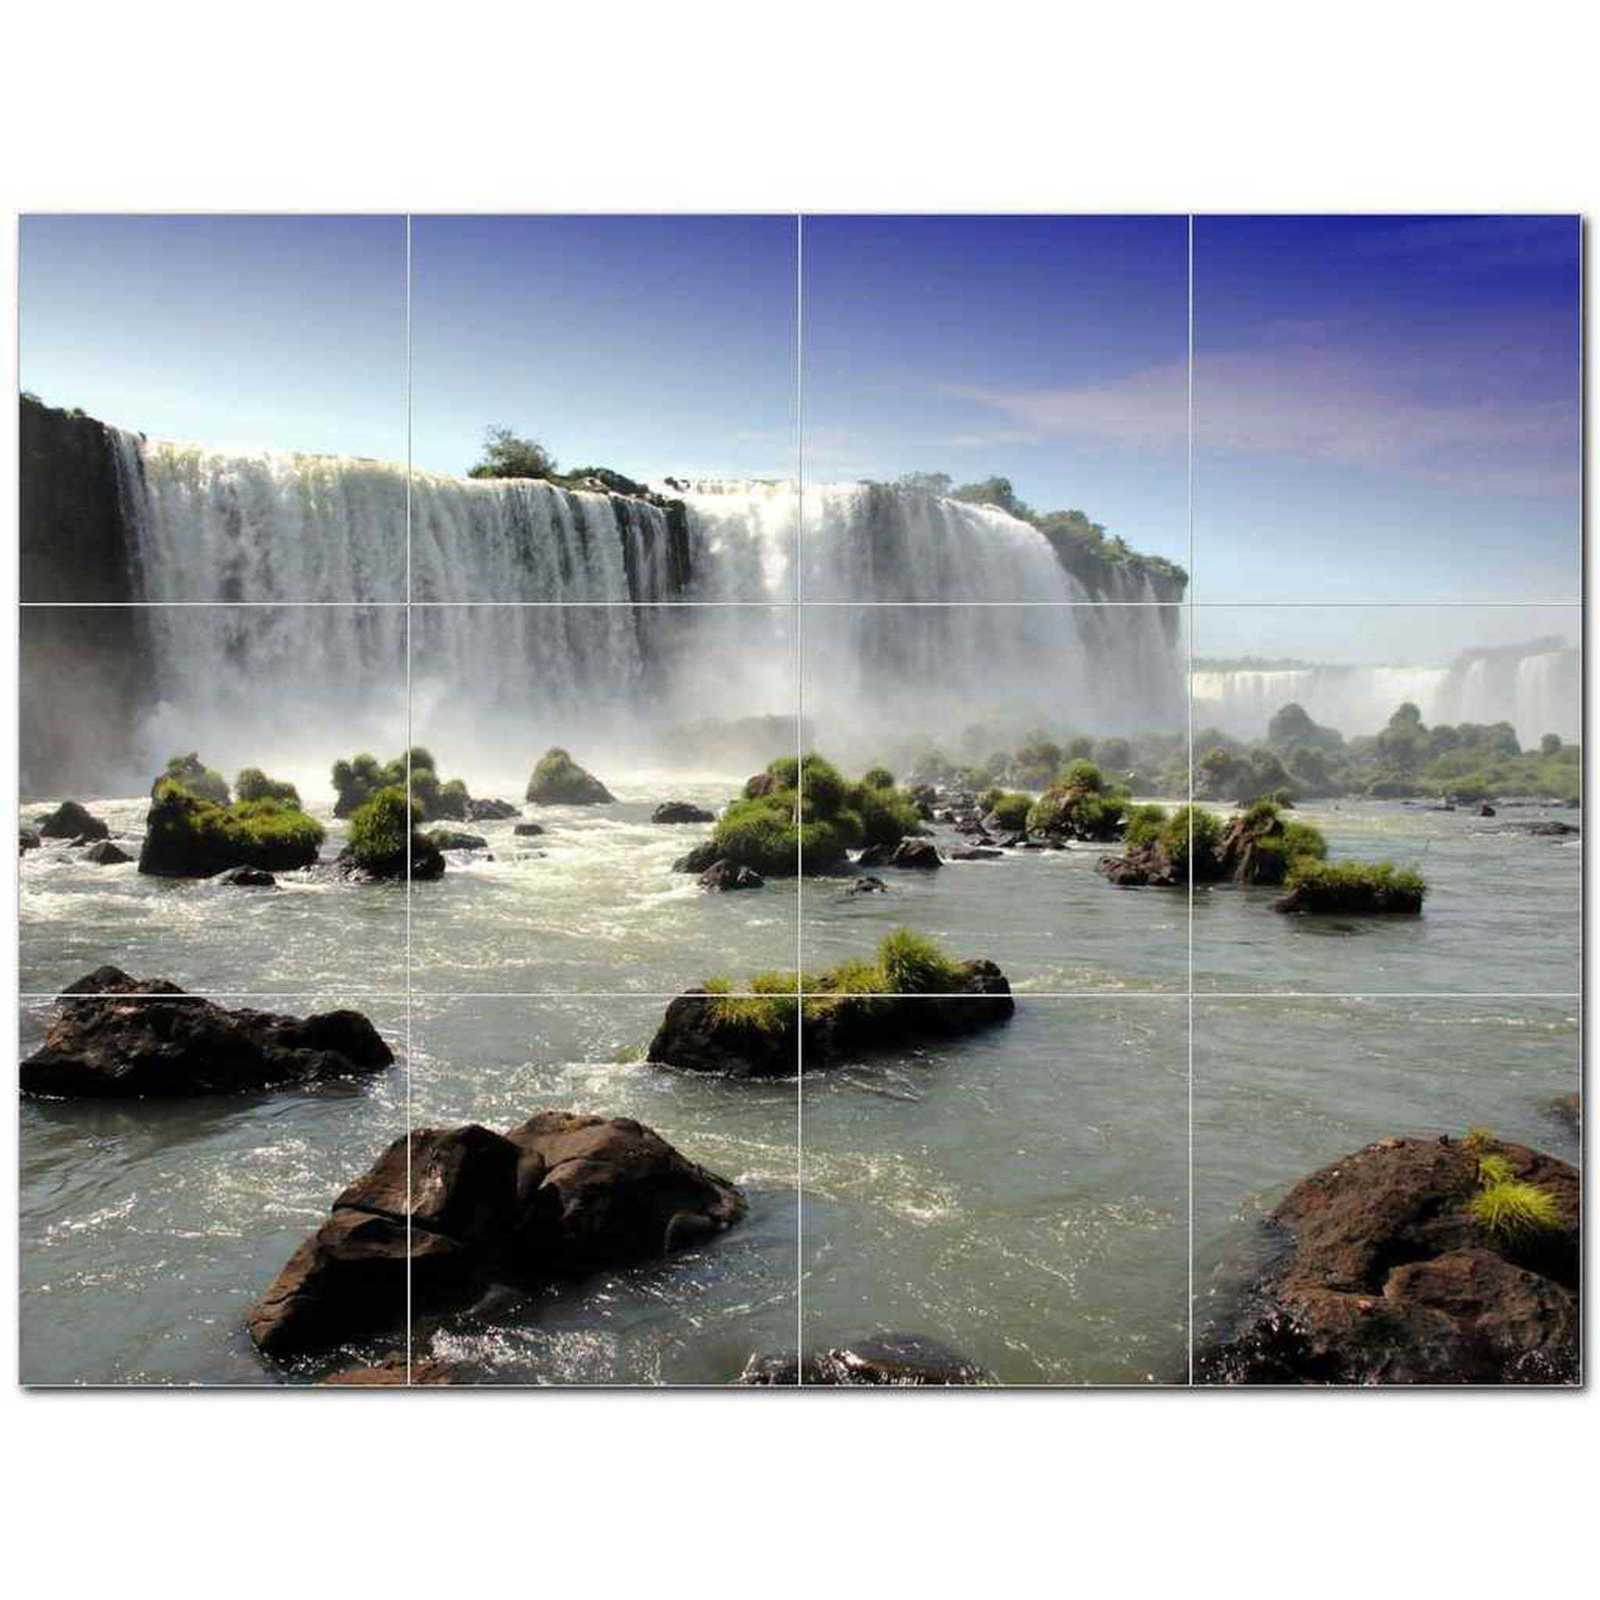 Primary image for Waterfall Photo Ceramic Tile Mural Kitchen Backsplash Bathroom Shower BAZ406107